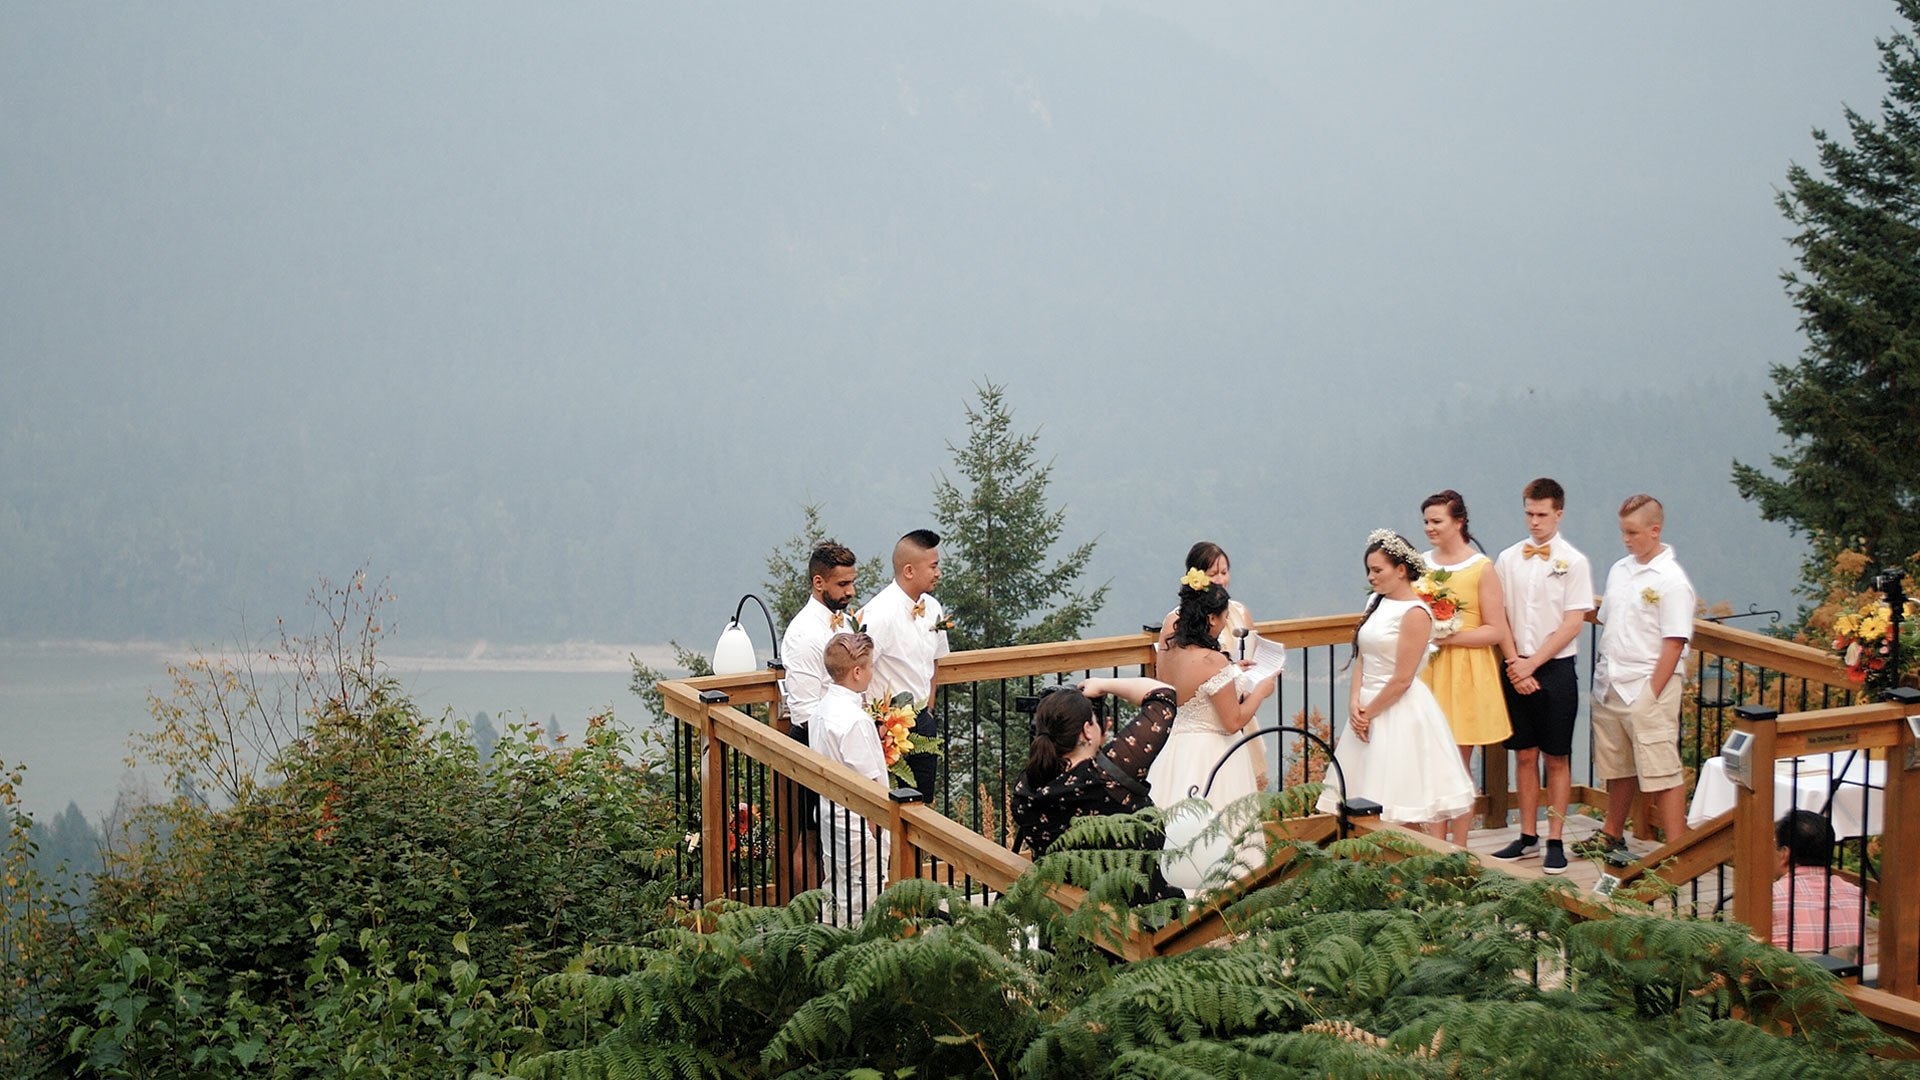 same sex wedding at American creek lodge hope bc